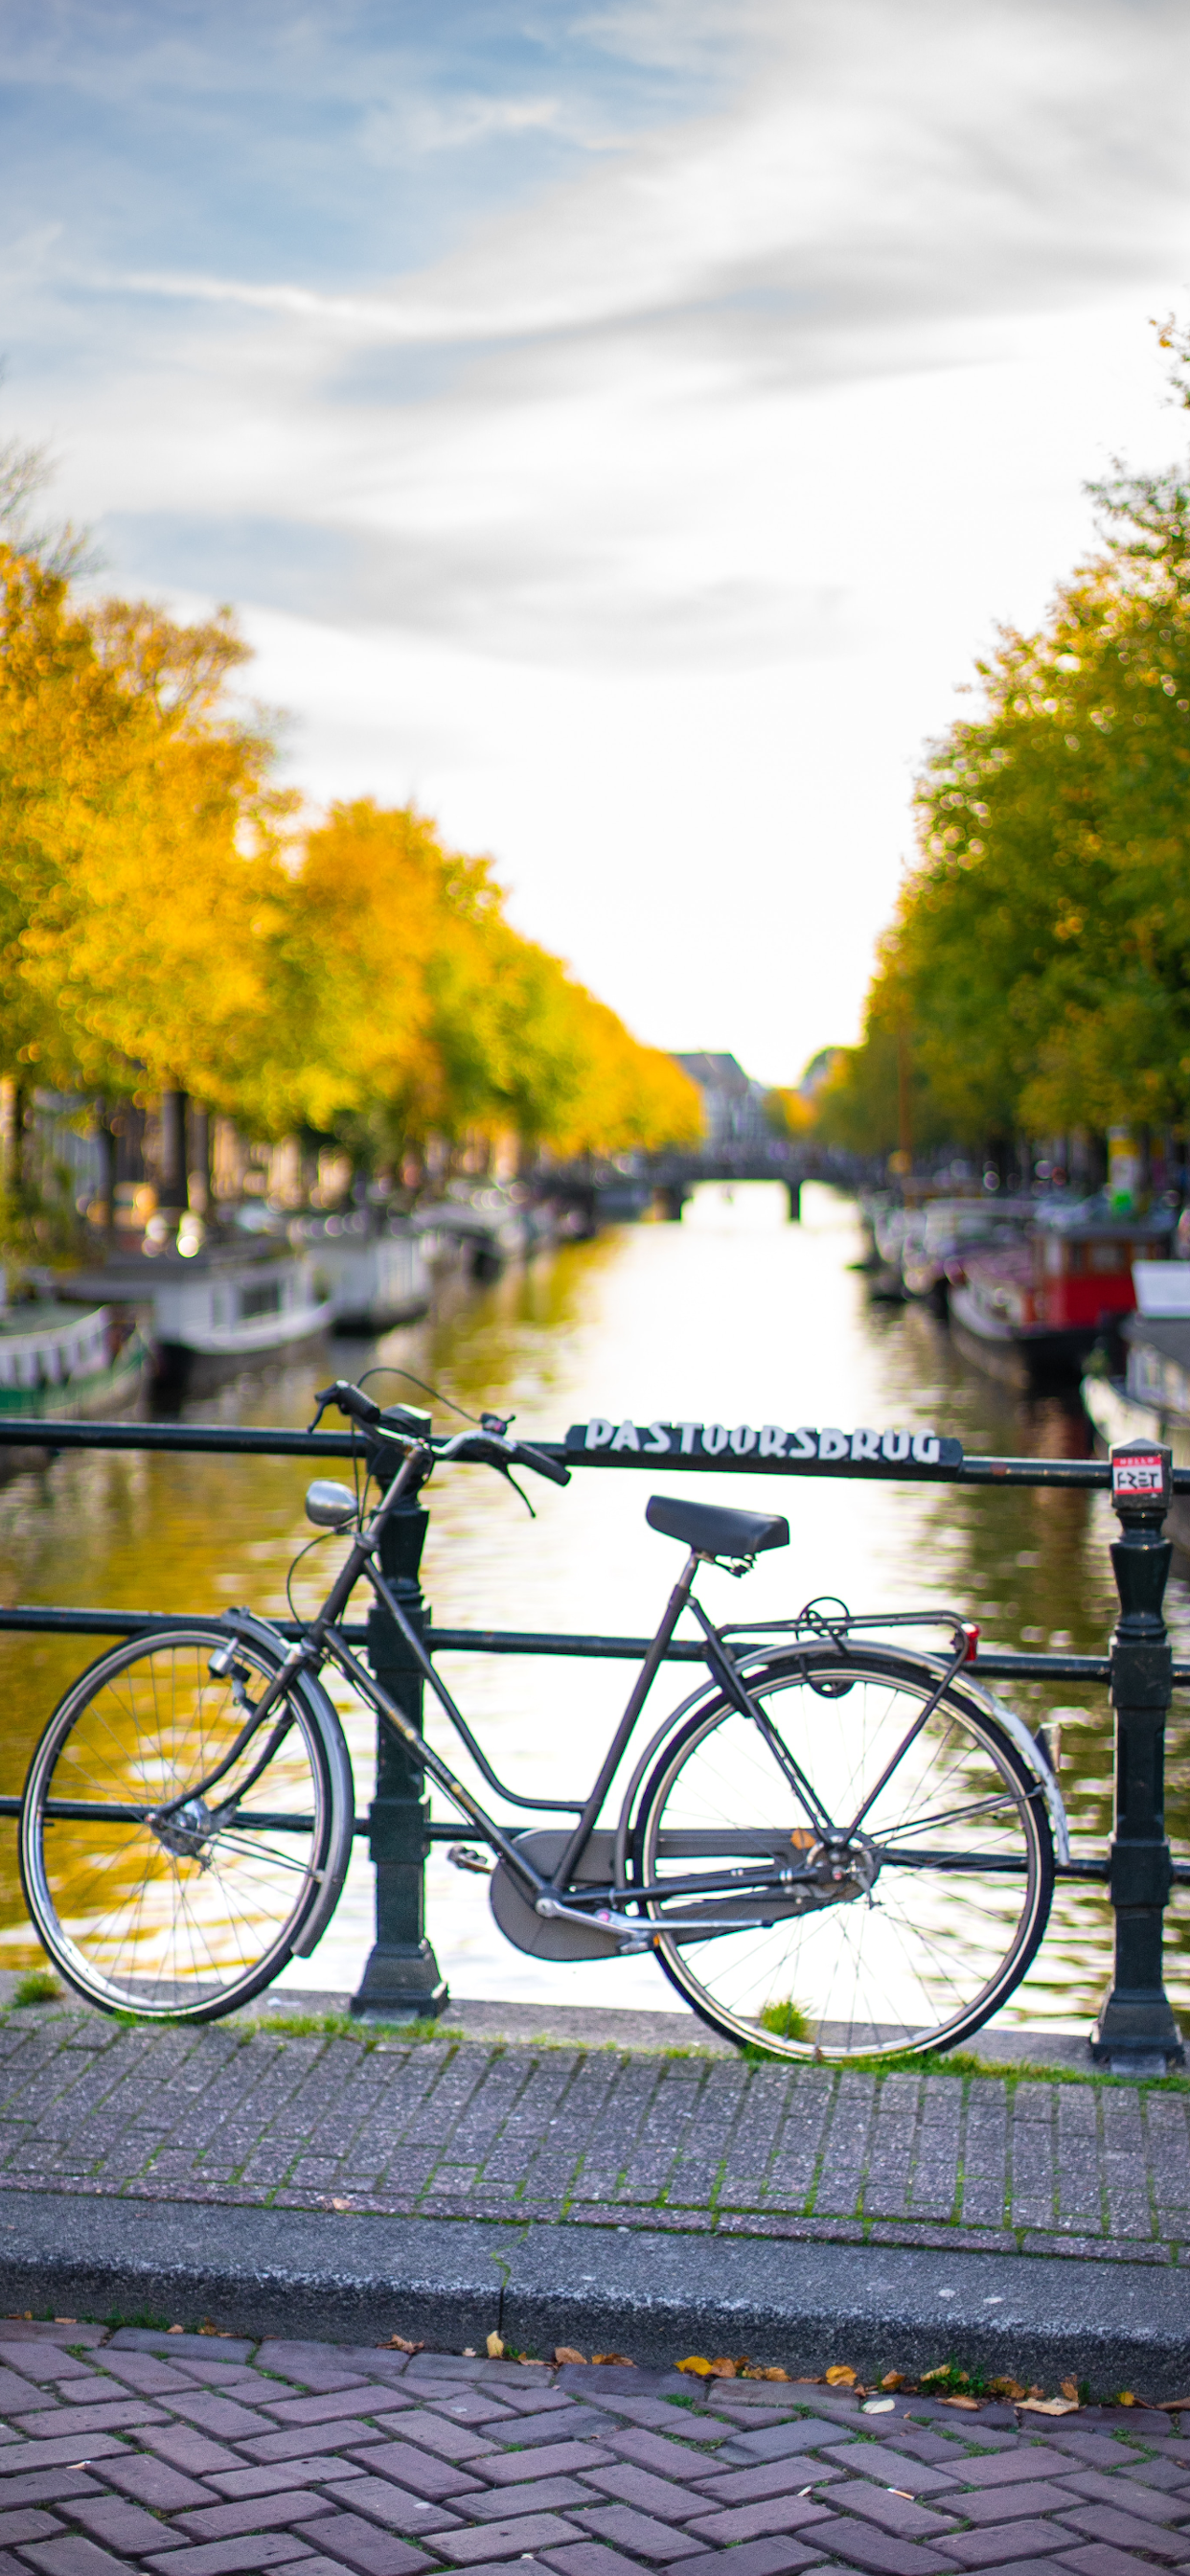 iPhone wallpapers bicycle amsterdam Bicycle